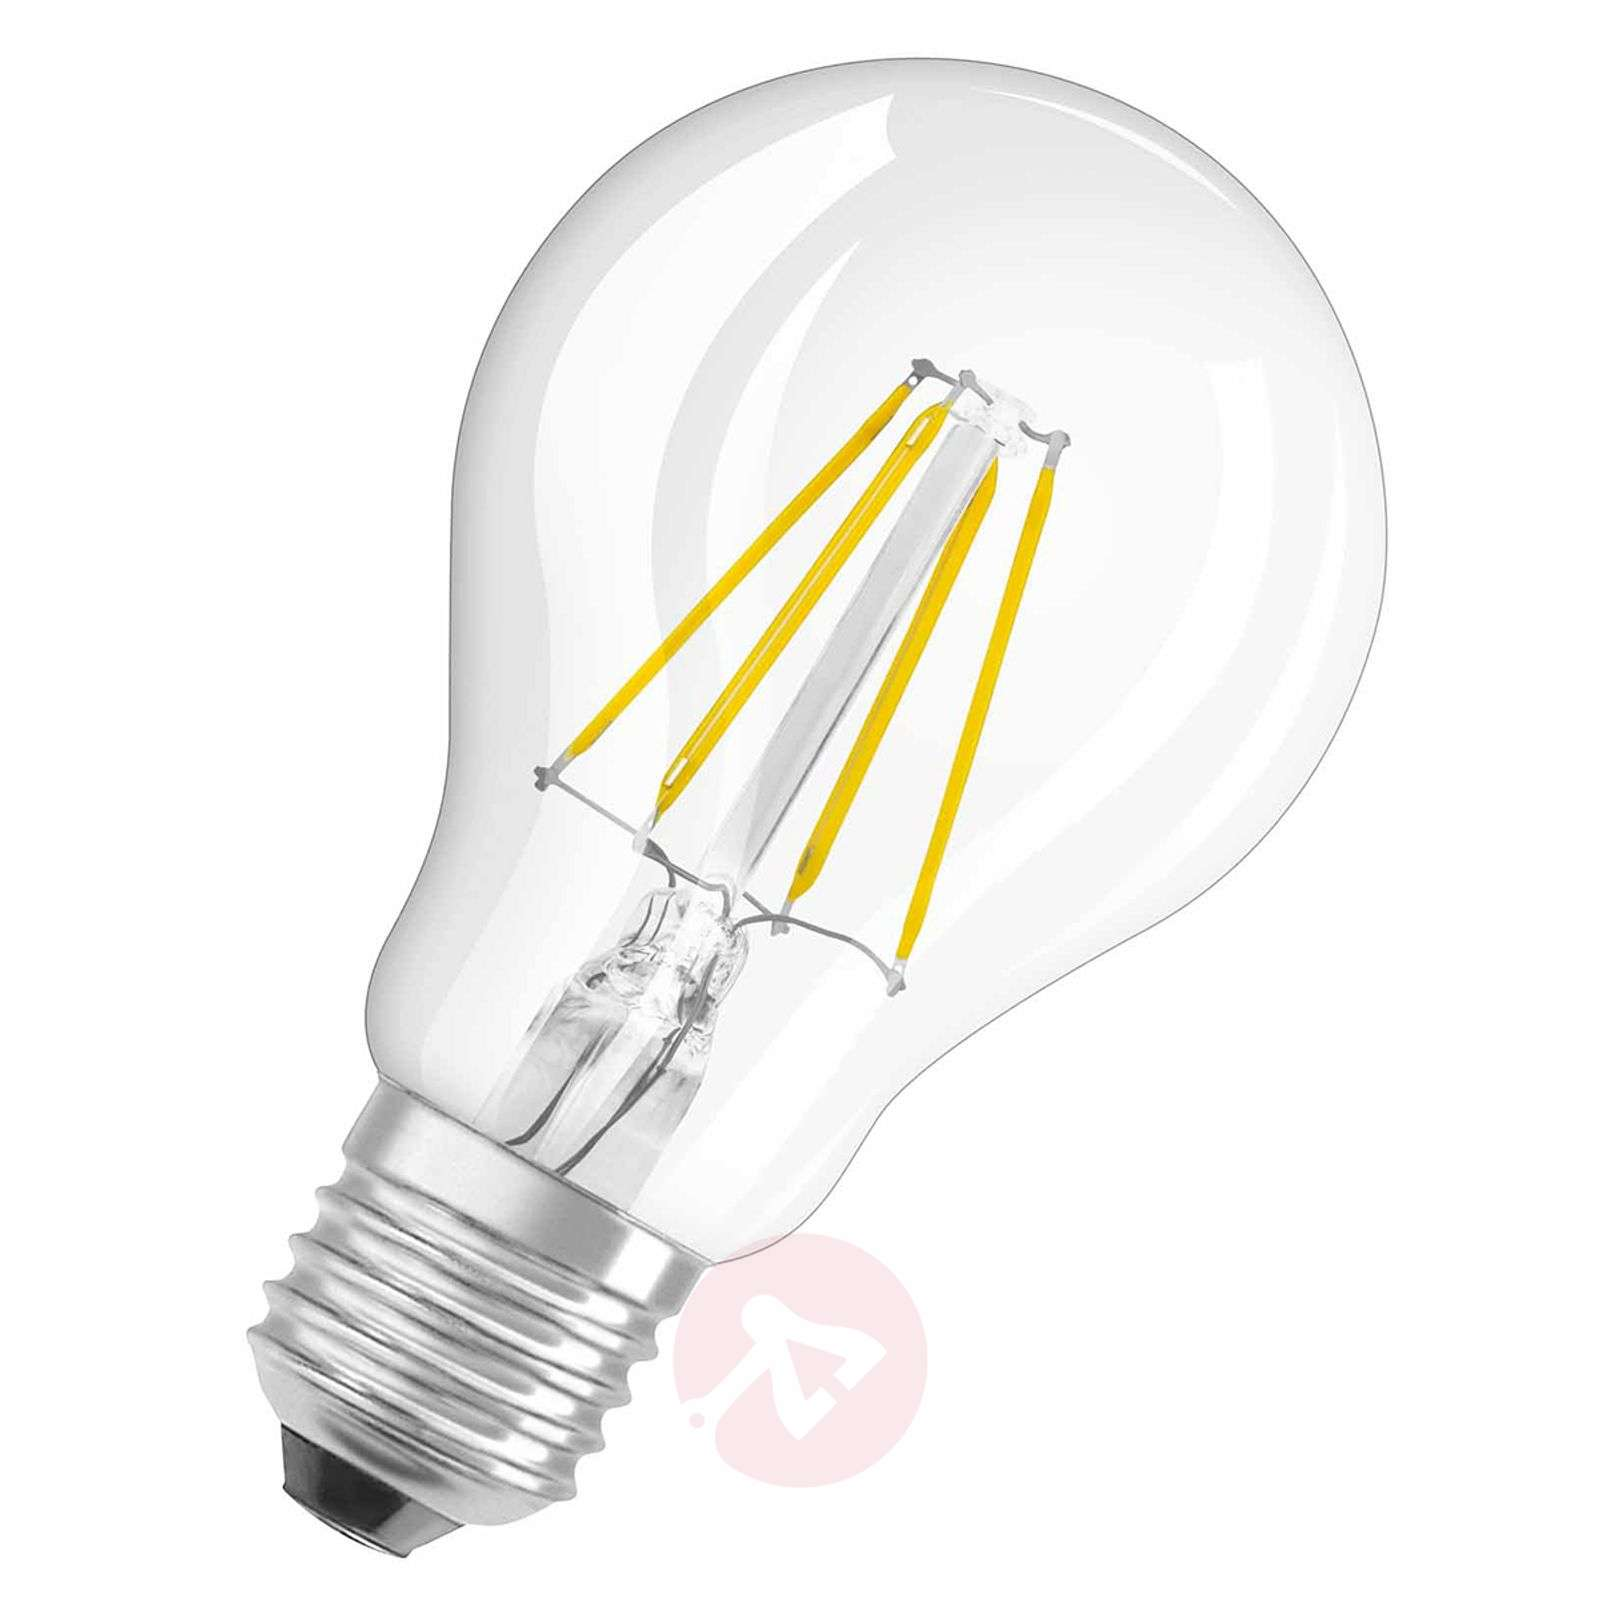 Ampoule LED à filament E27 4W 827 Retrofit-7260853-01